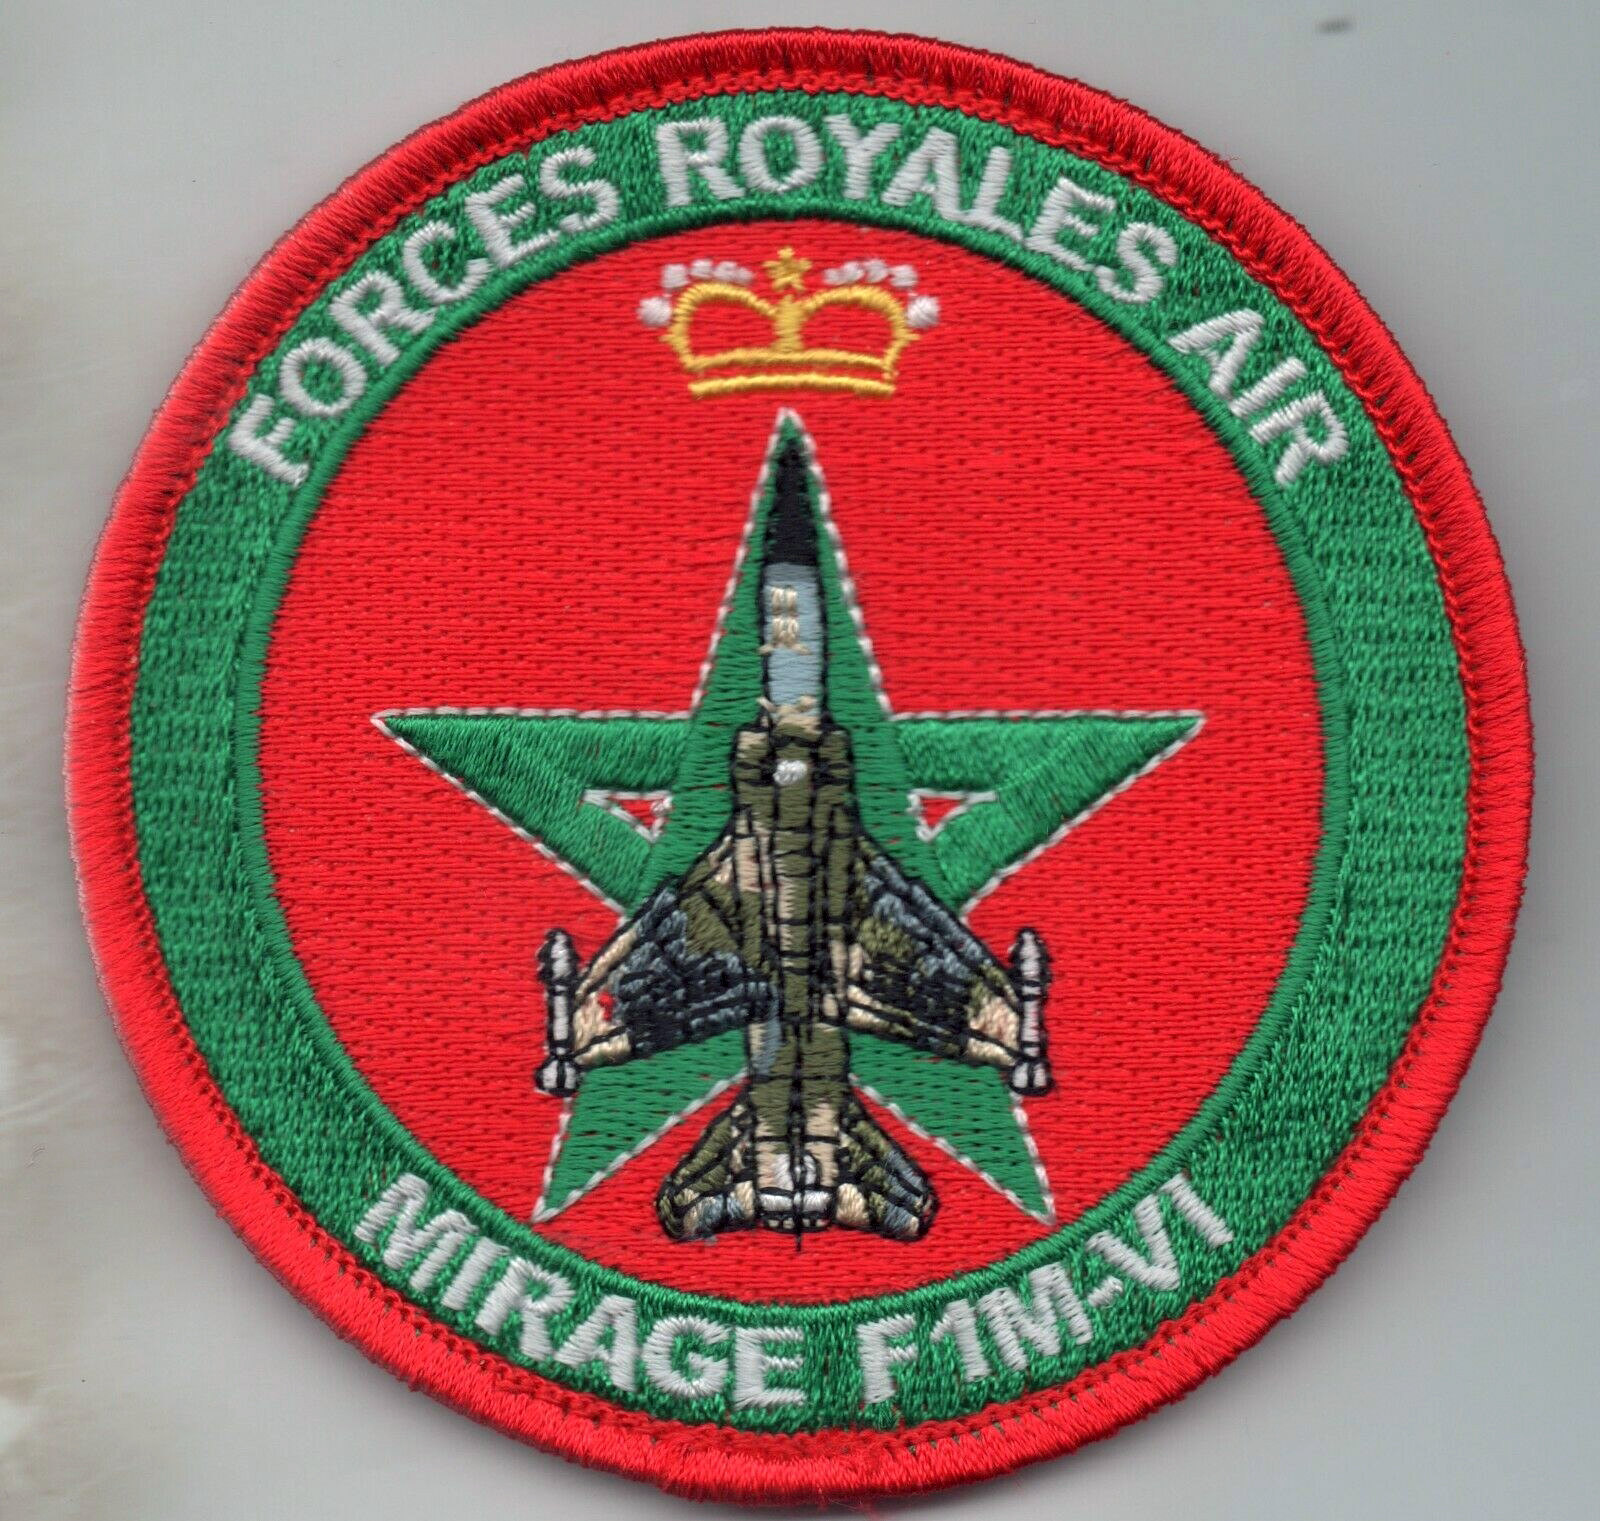 RMAF insignia Swirls Patches / Ecussons,cocardes et Insignes Des FRA - Page 8 49508544298_6b992186f5_h